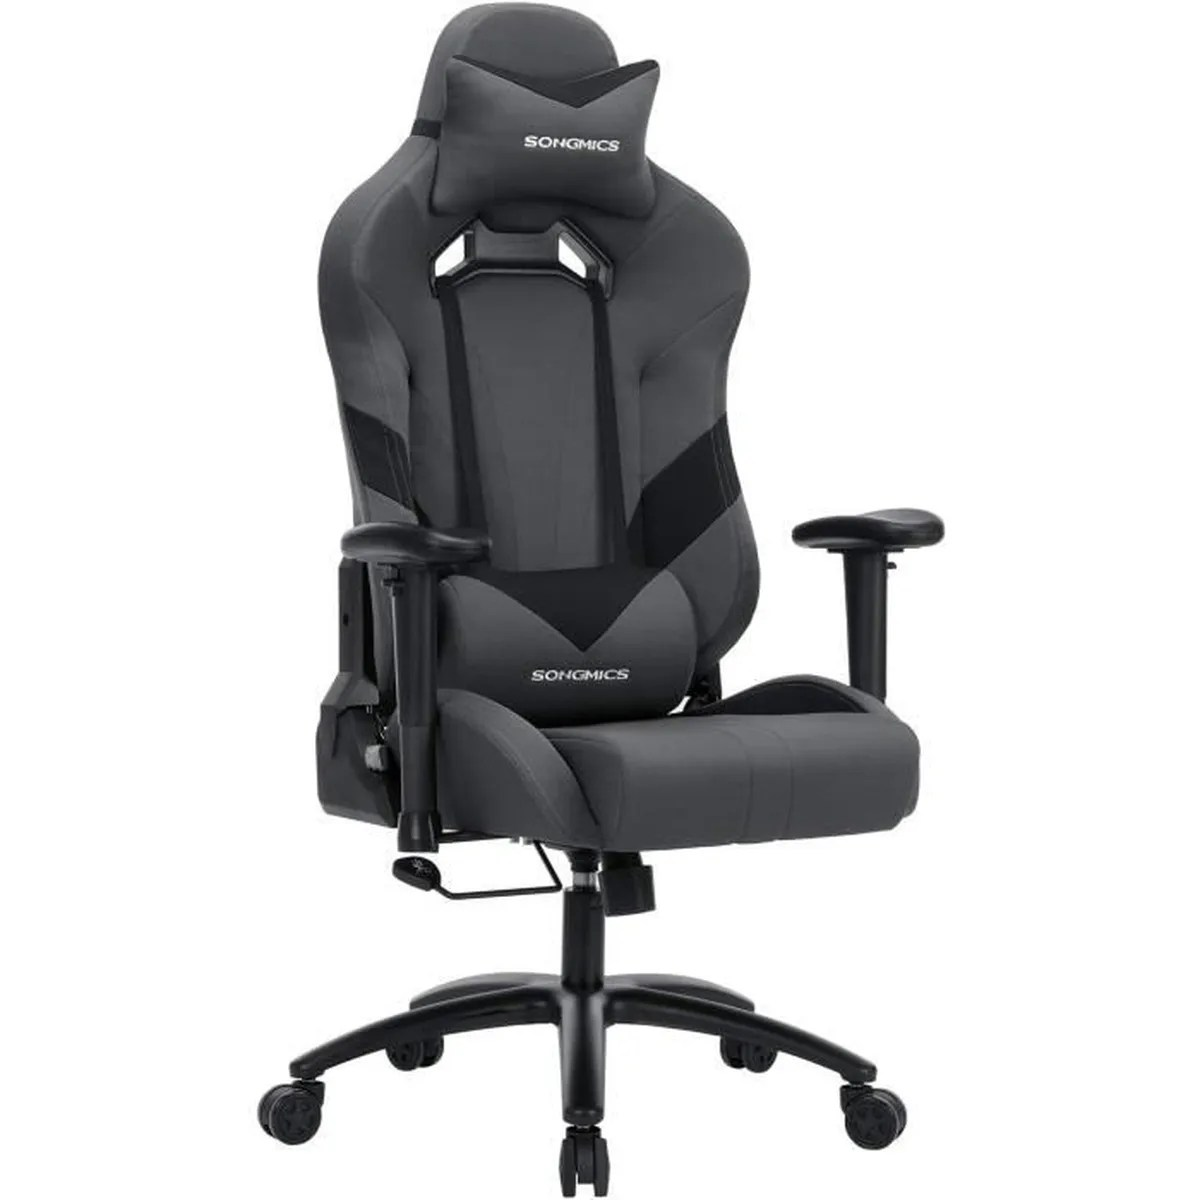 Promo Chaise Gamer Songmics Chaise De Bureau Racing Sport Hauteur Réglable 124